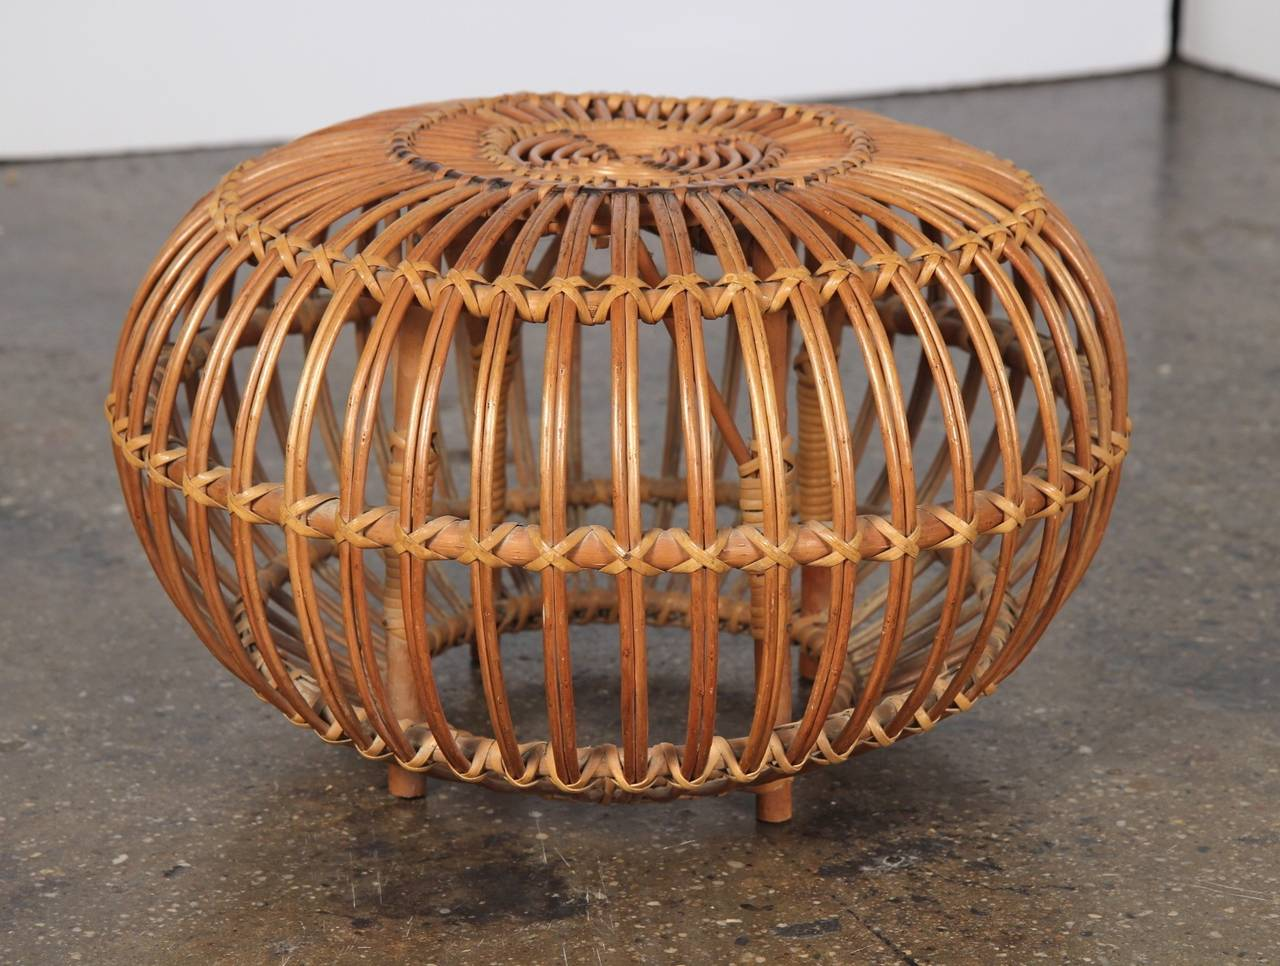 Franco Albini demonstrates the artful weaving of rattan. In great condition, rattan has some age-appropriate wear. Does not detract from the integrity of its sturdiness or its beautiful appearance. Perfect as a foot stool or a light-duty side table.